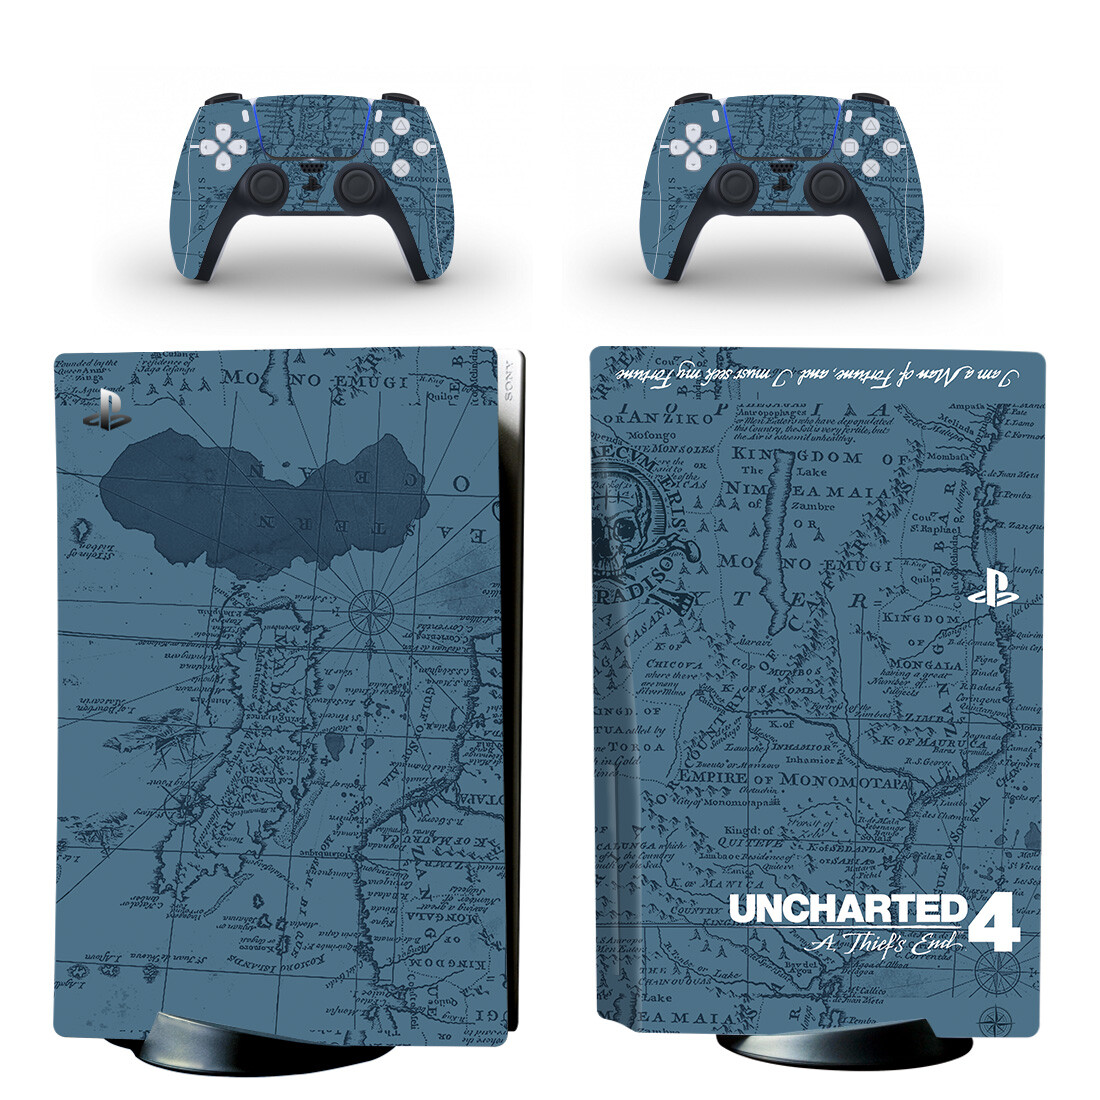 Uncharted 4 A Thief's End Skin Sticker For PS5 Skin And Controllers